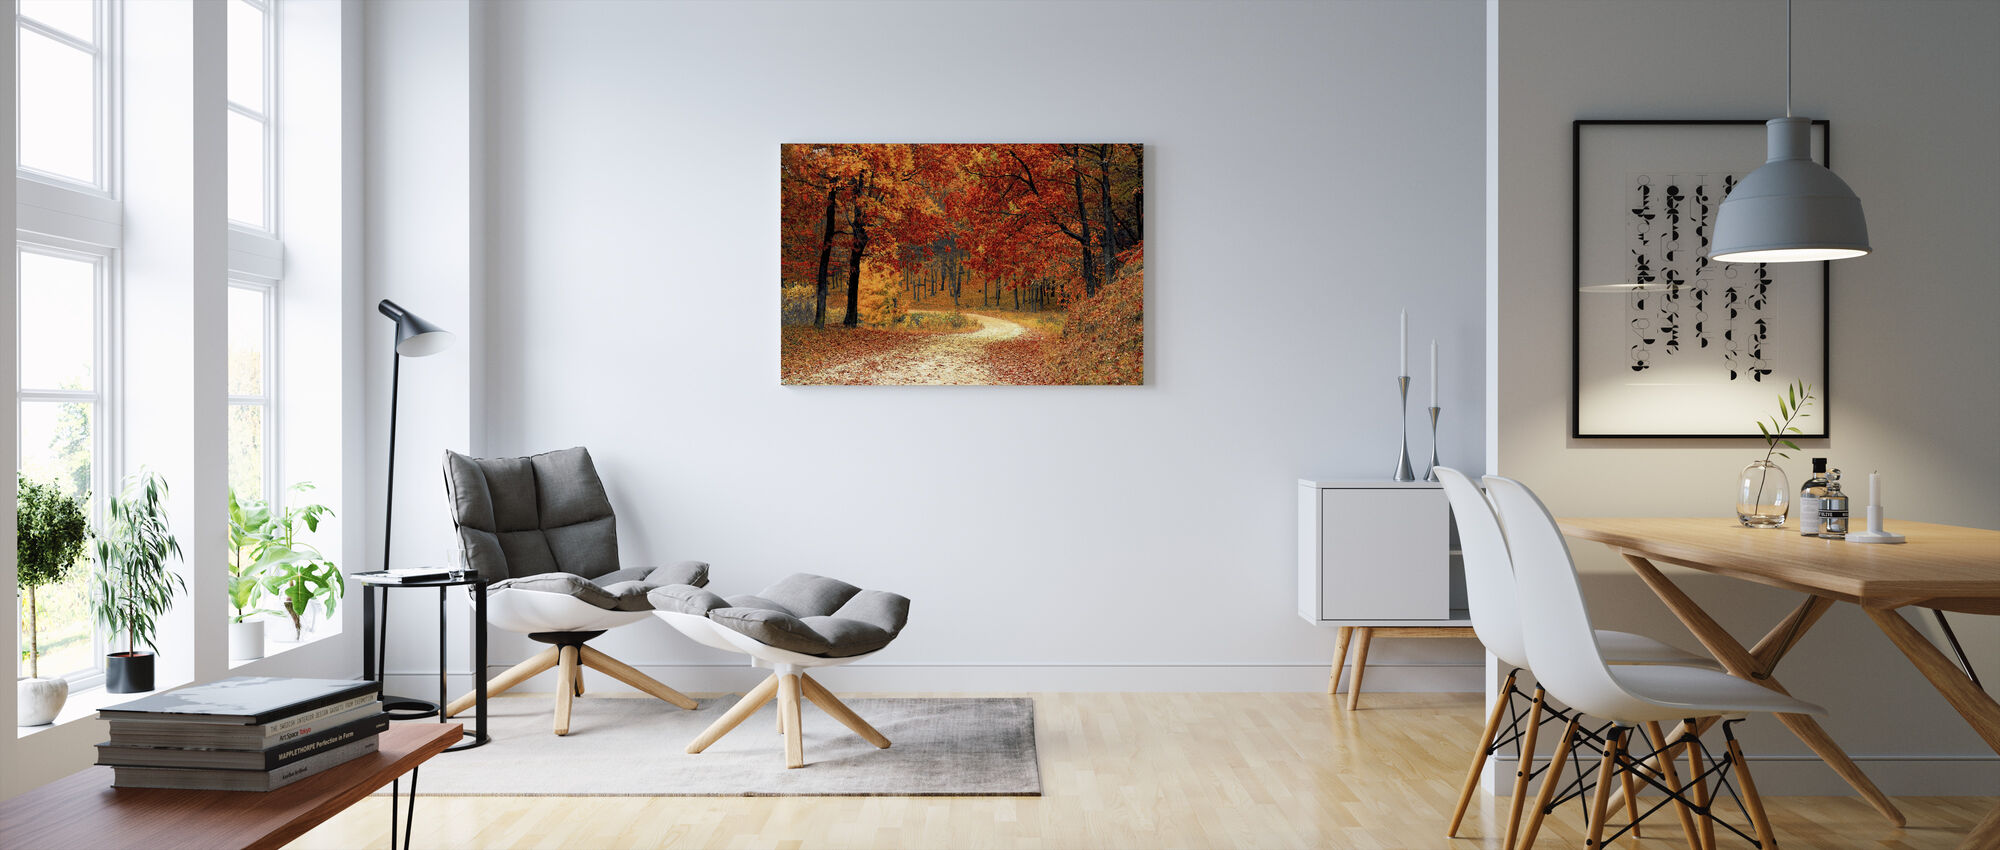 Woods Pathway - Canvas print - Living Room